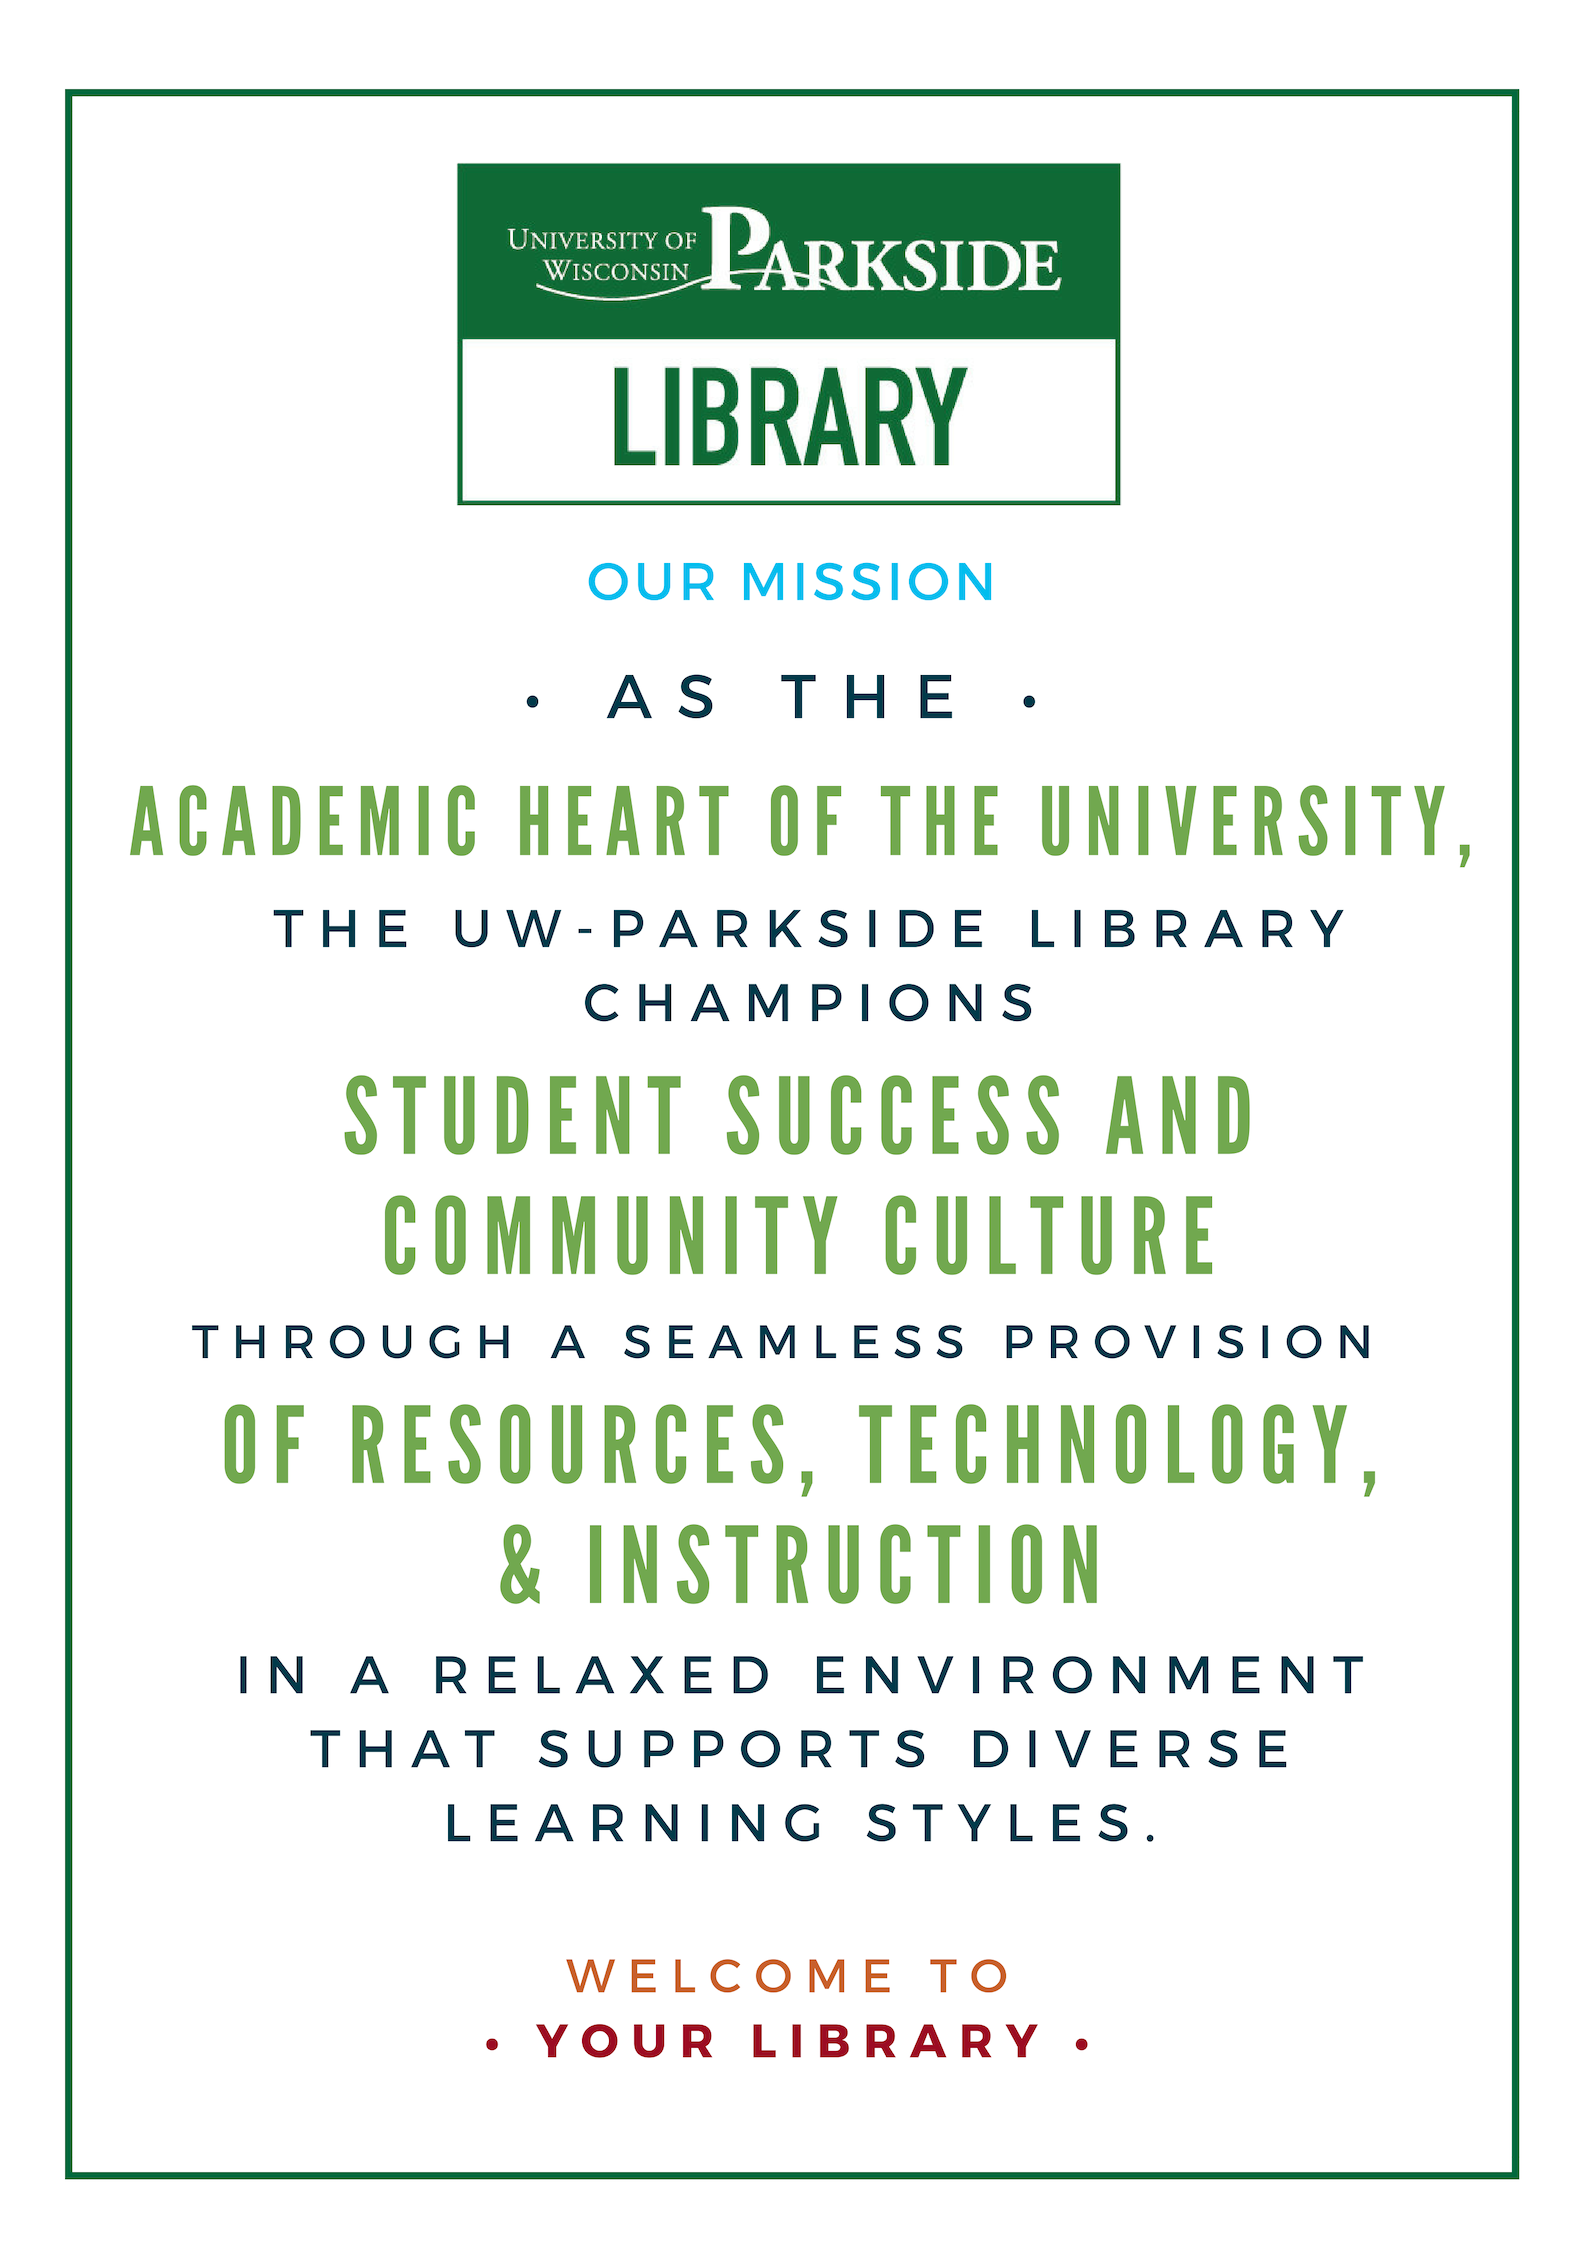 UWP Library Mission Statement